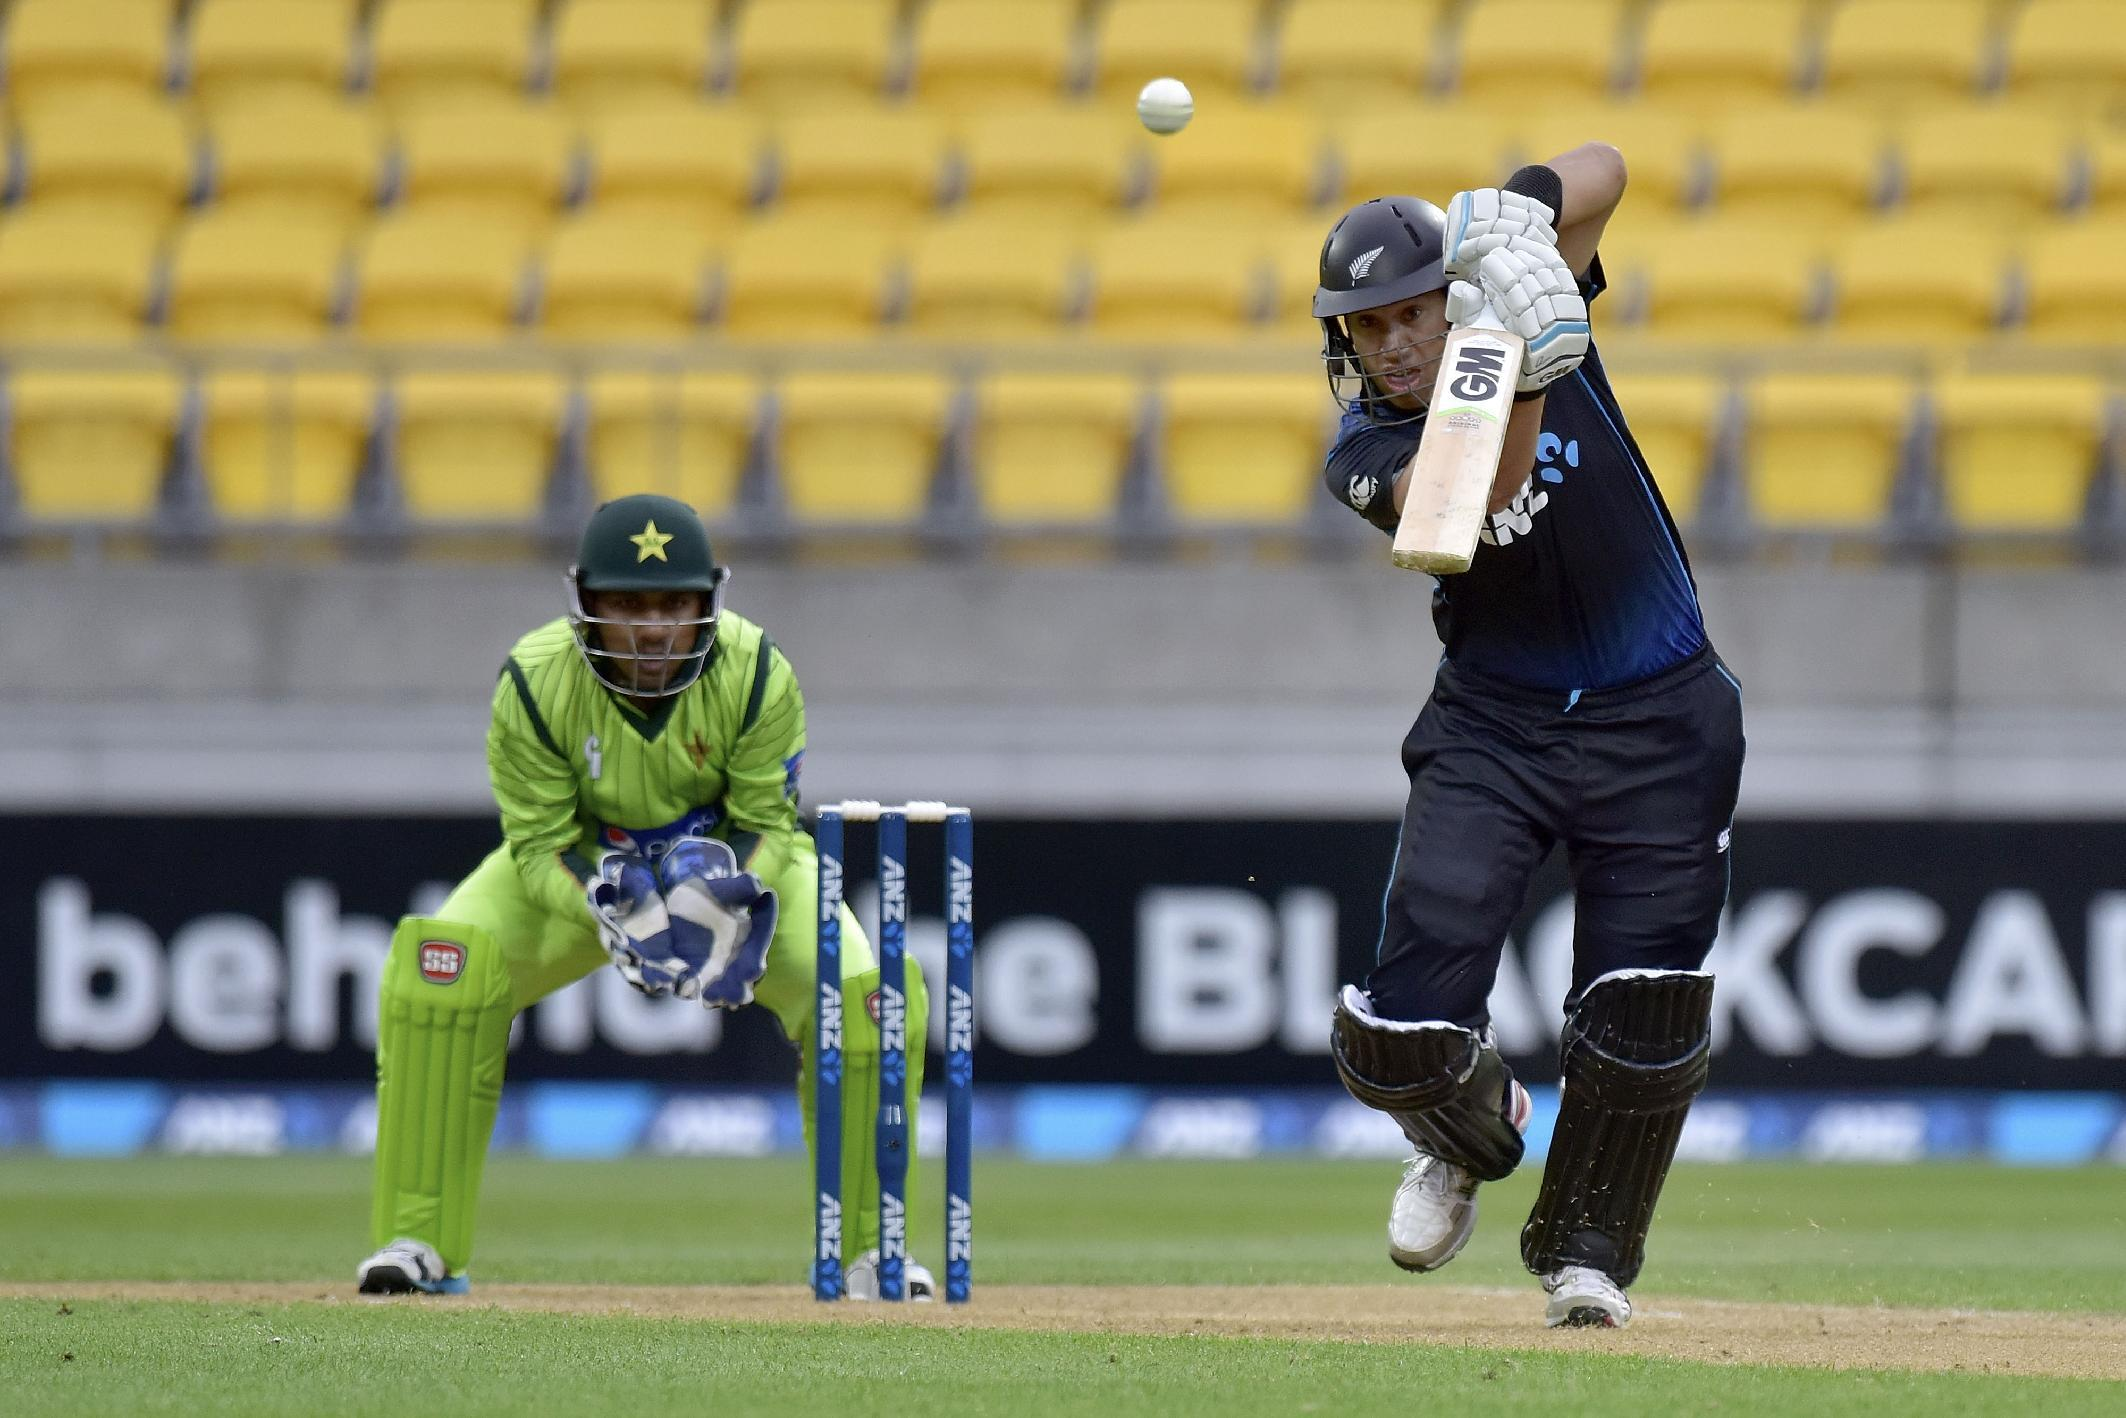 New Zealand coast to seven-wicket win over Pakistan